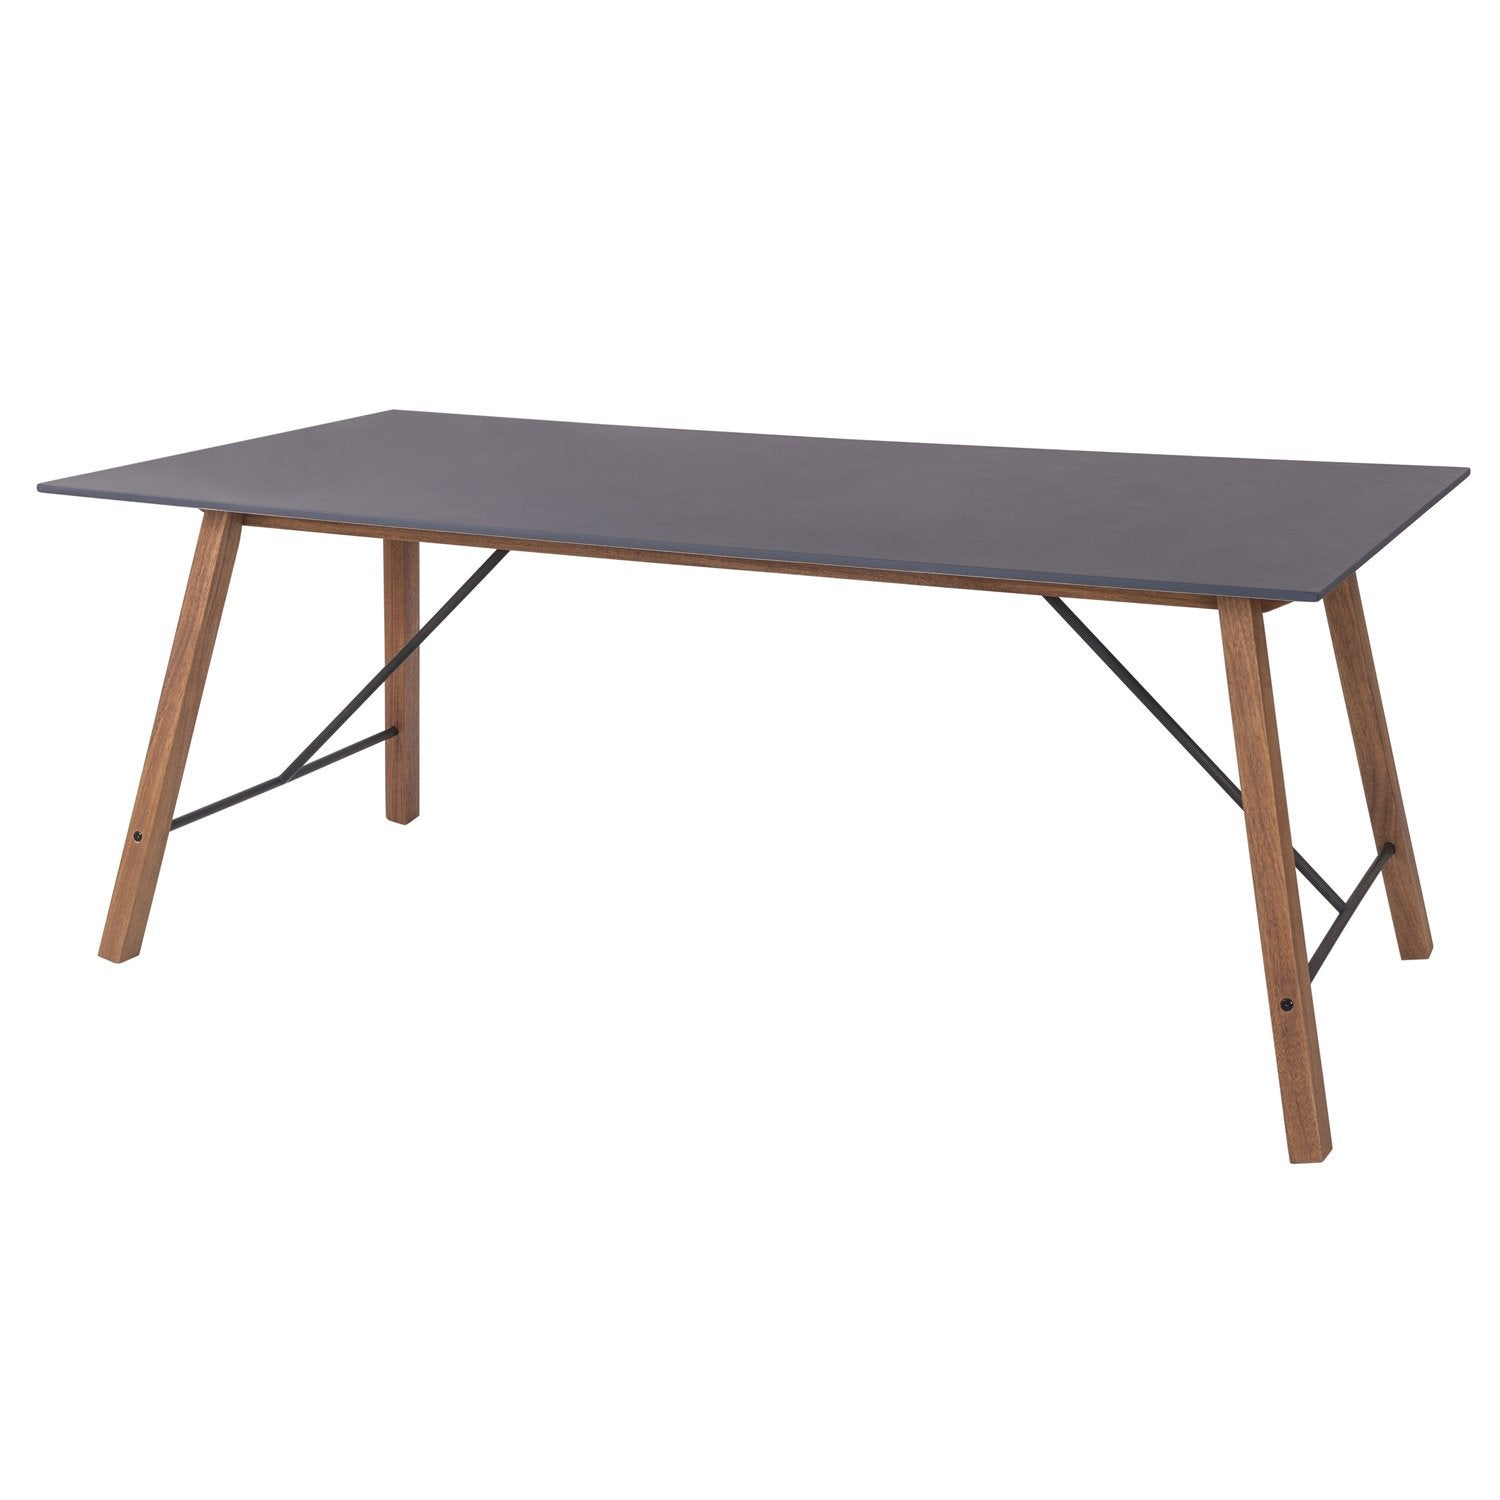 table de jardin archi rectangulaire gris 6 personnes | leroy merlin